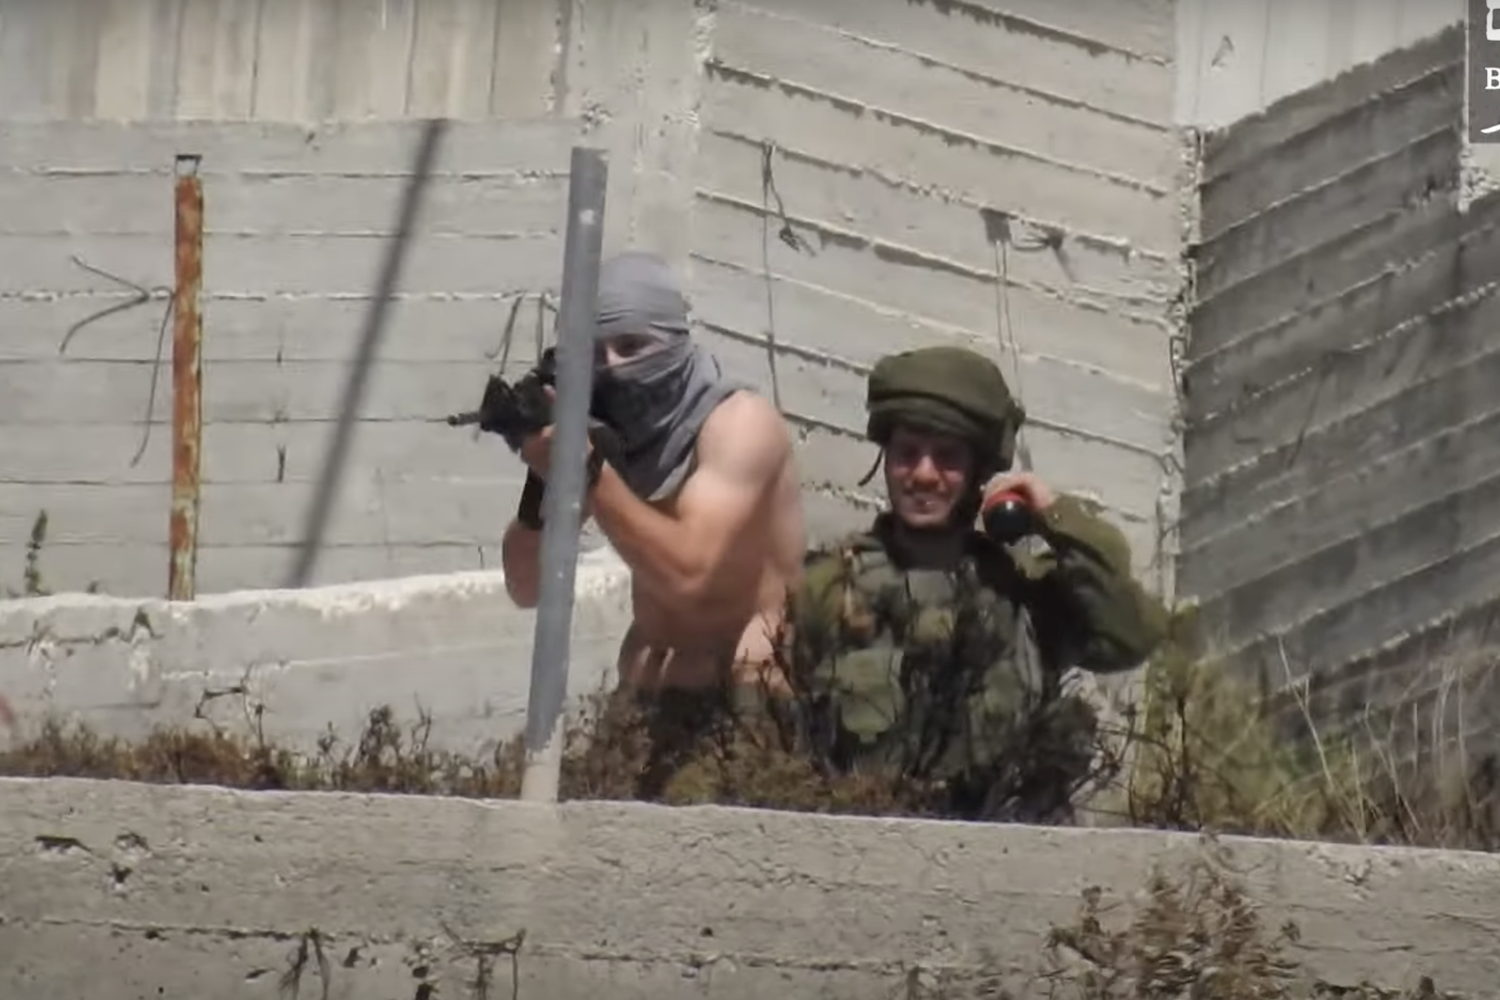 A settler, armed with an automatic rifle, stands directly in front of an Israeli solider as he takes aim and opens fire at Palestinian villagers, Urif, May 14, 20201. (Mazen Shehadeh)